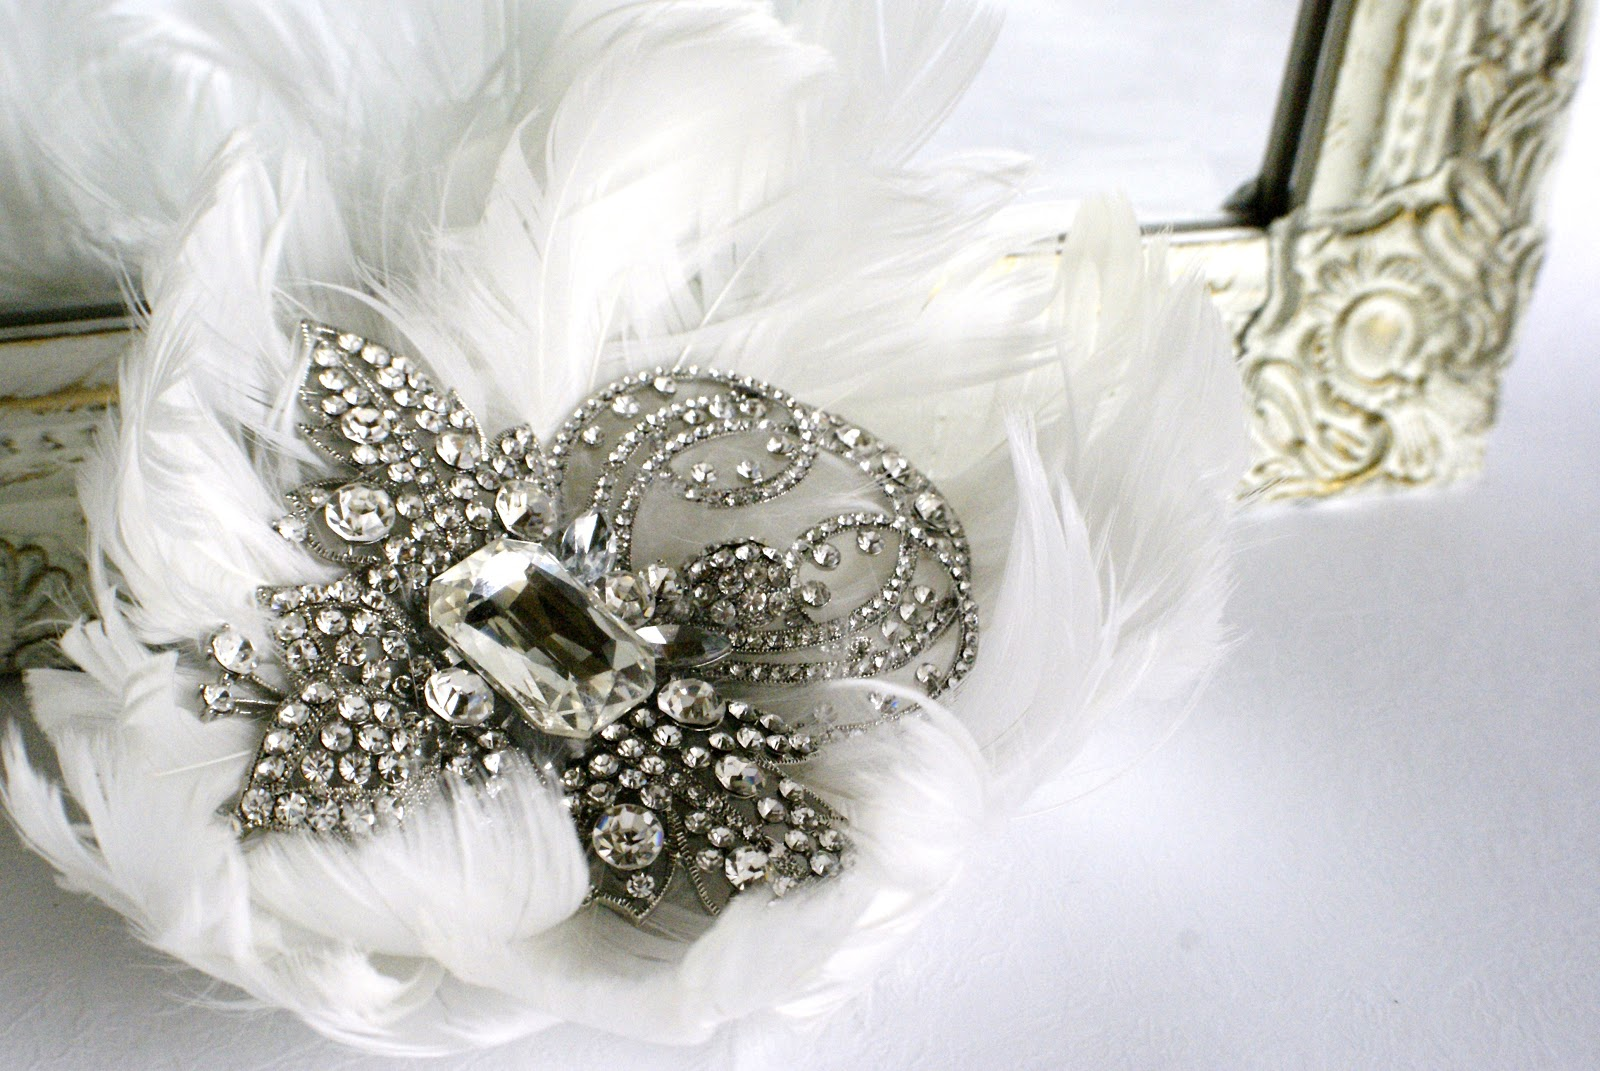 Handmade Bridal And Wedding Jewelry By Vintage Touch: One